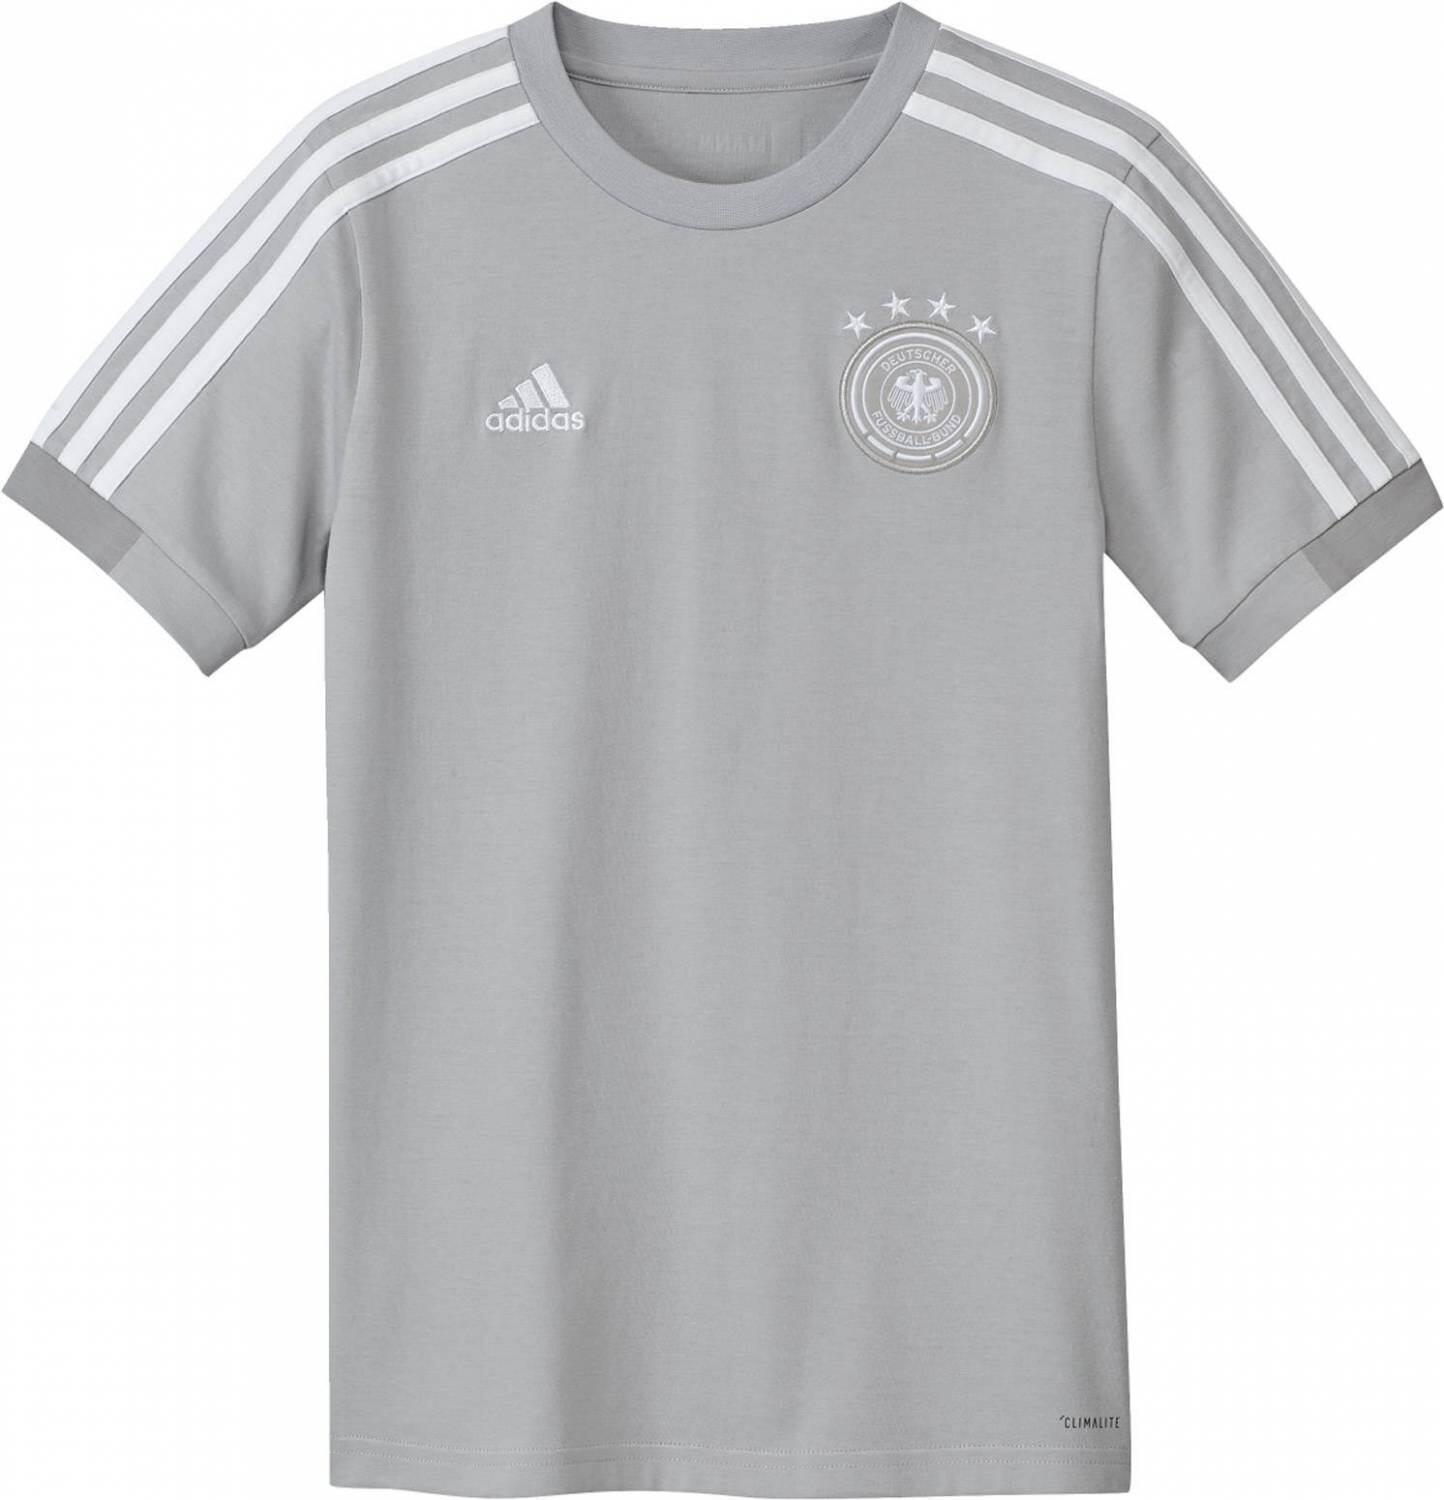 Boyssportmode - adidas DFB Trainings Tee Youth Trikot Kids (Größe 164, grey two f17 mgh solid grey white) - Onlineshop Sportolino